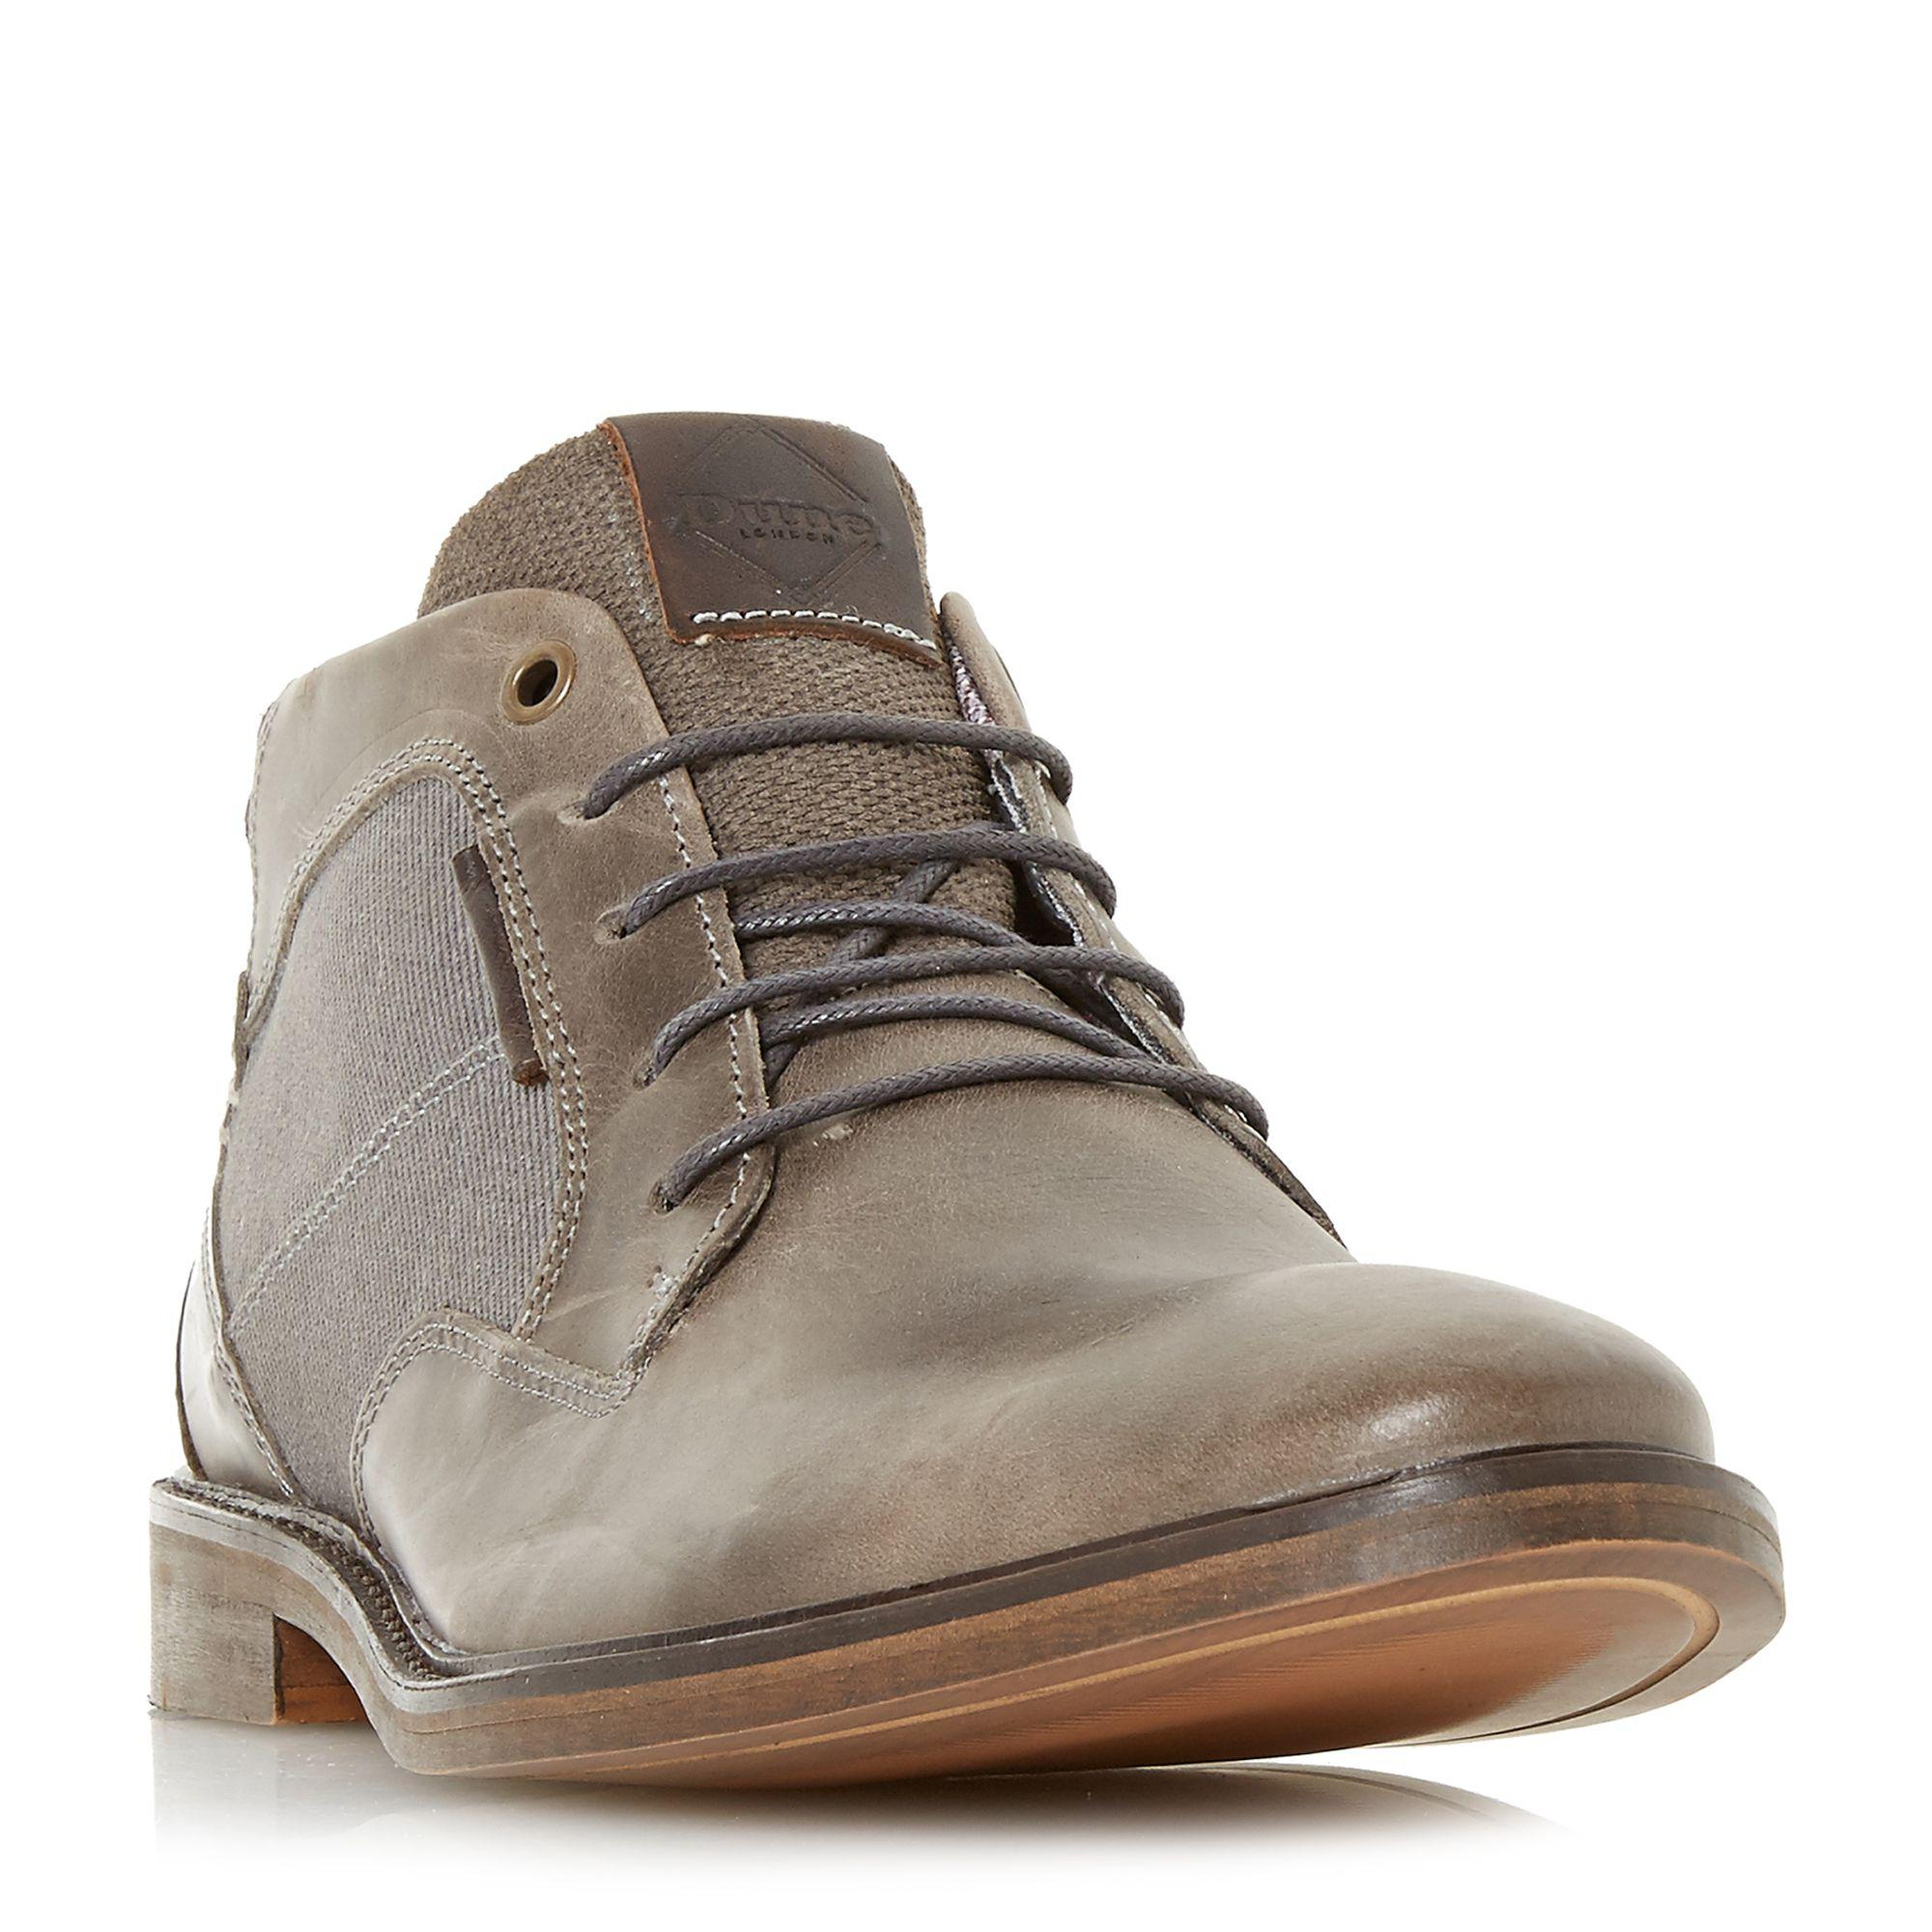 Tan 'Cosmo' contrast collar chukka boots low shipping fee online sale order 100% guaranteed cheap price sale discount new arrival sale online UQyT39S